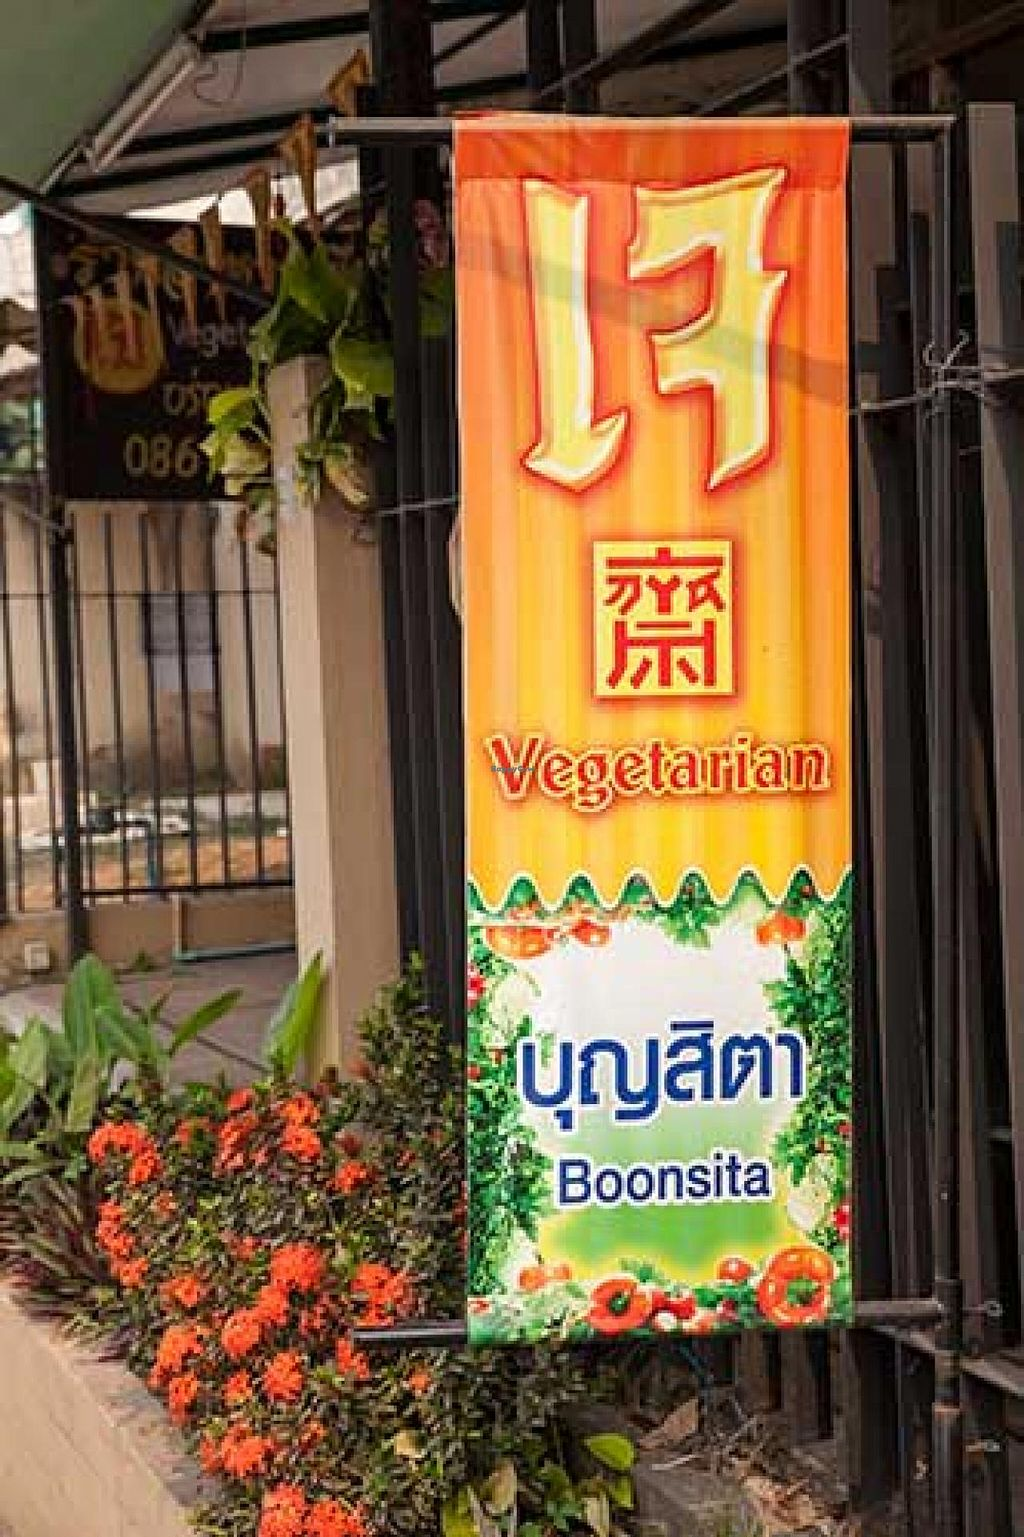 """Photo of Boonsita Restaurant  by <a href=""""/members/profile/BamBooShoot"""">BamBooShoot</a> <br/>Boonsita- Chiang Rai <br/> March 11, 2014  - <a href='/contact/abuse/image/374/65664'>Report</a>"""